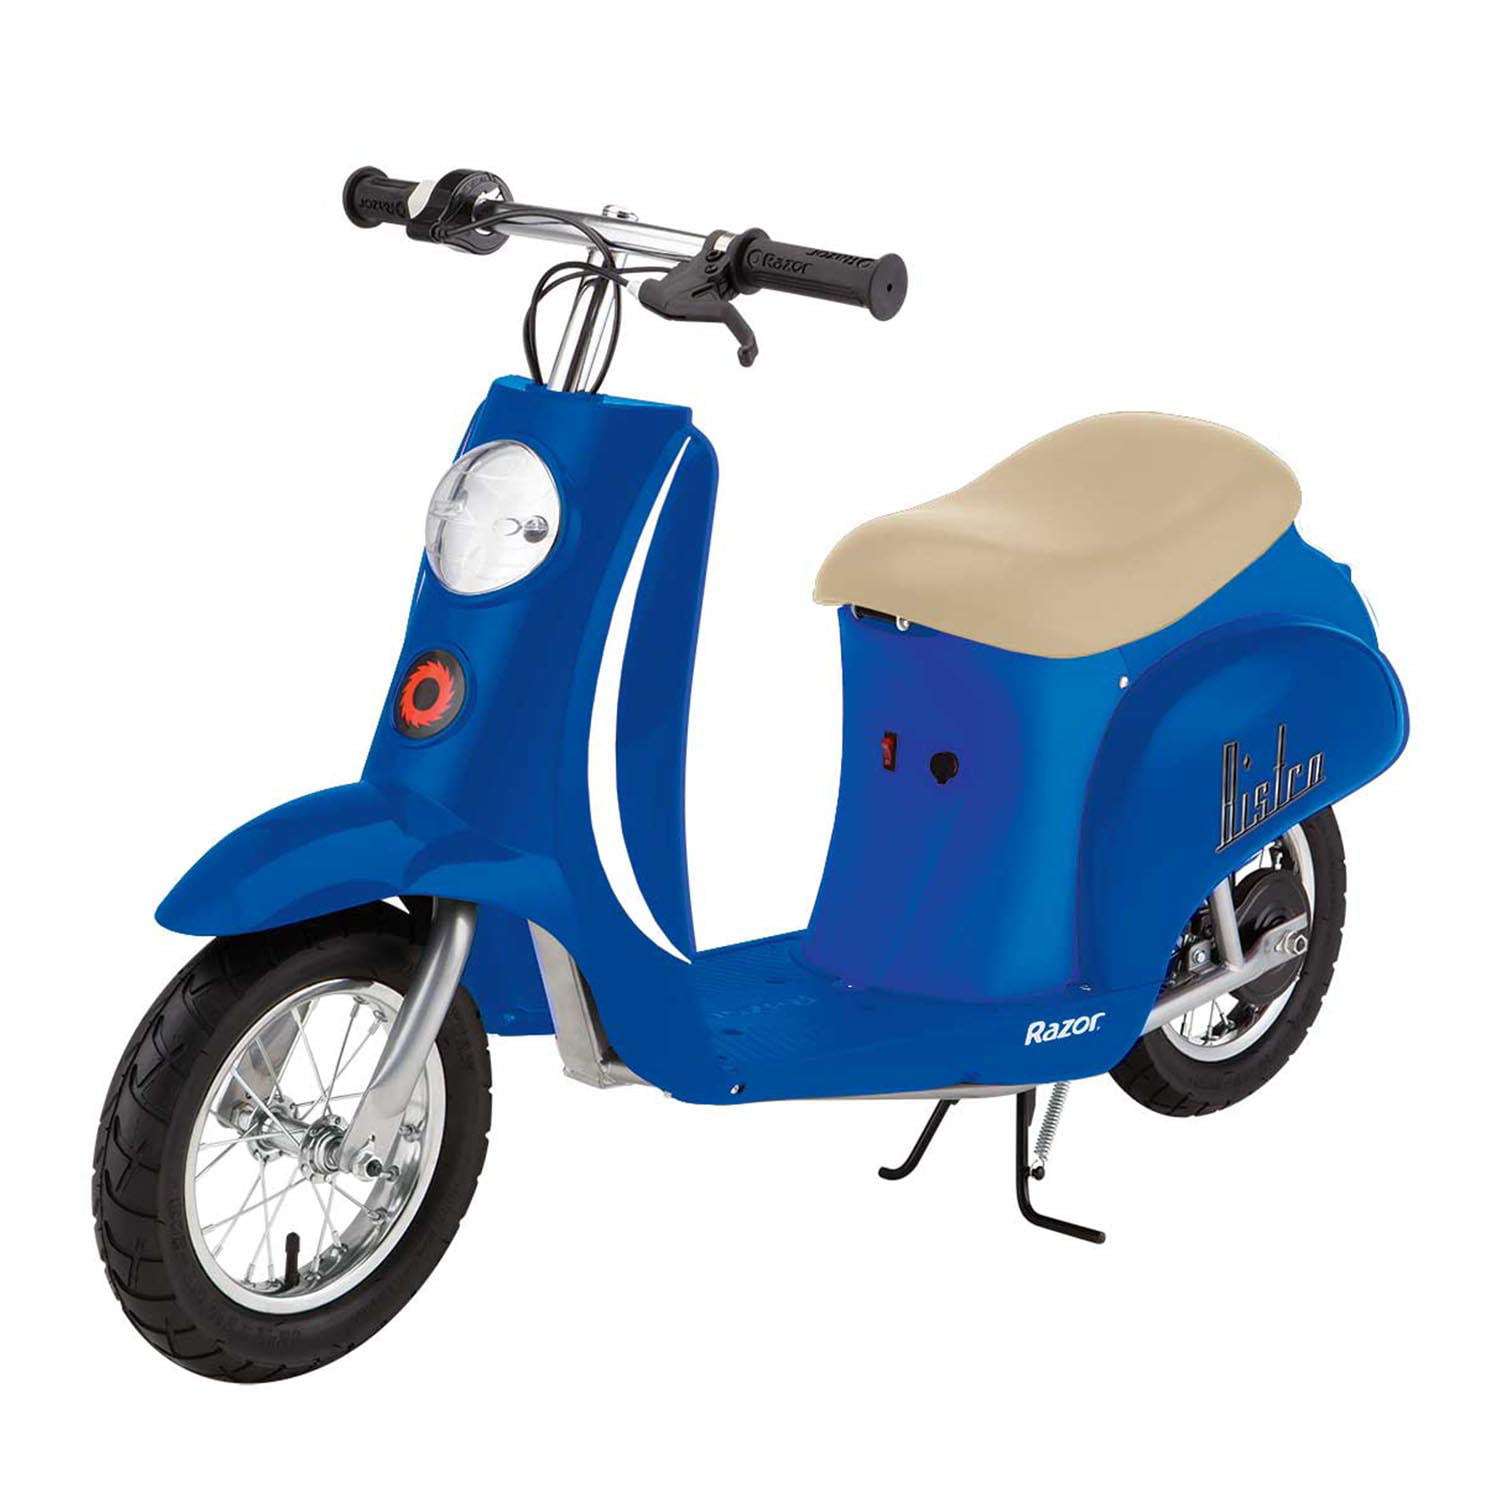 Razor Pocket Mod Miniature Euro 24 Volt 250 Watt Electric Retro Scooter, Blue by Razor